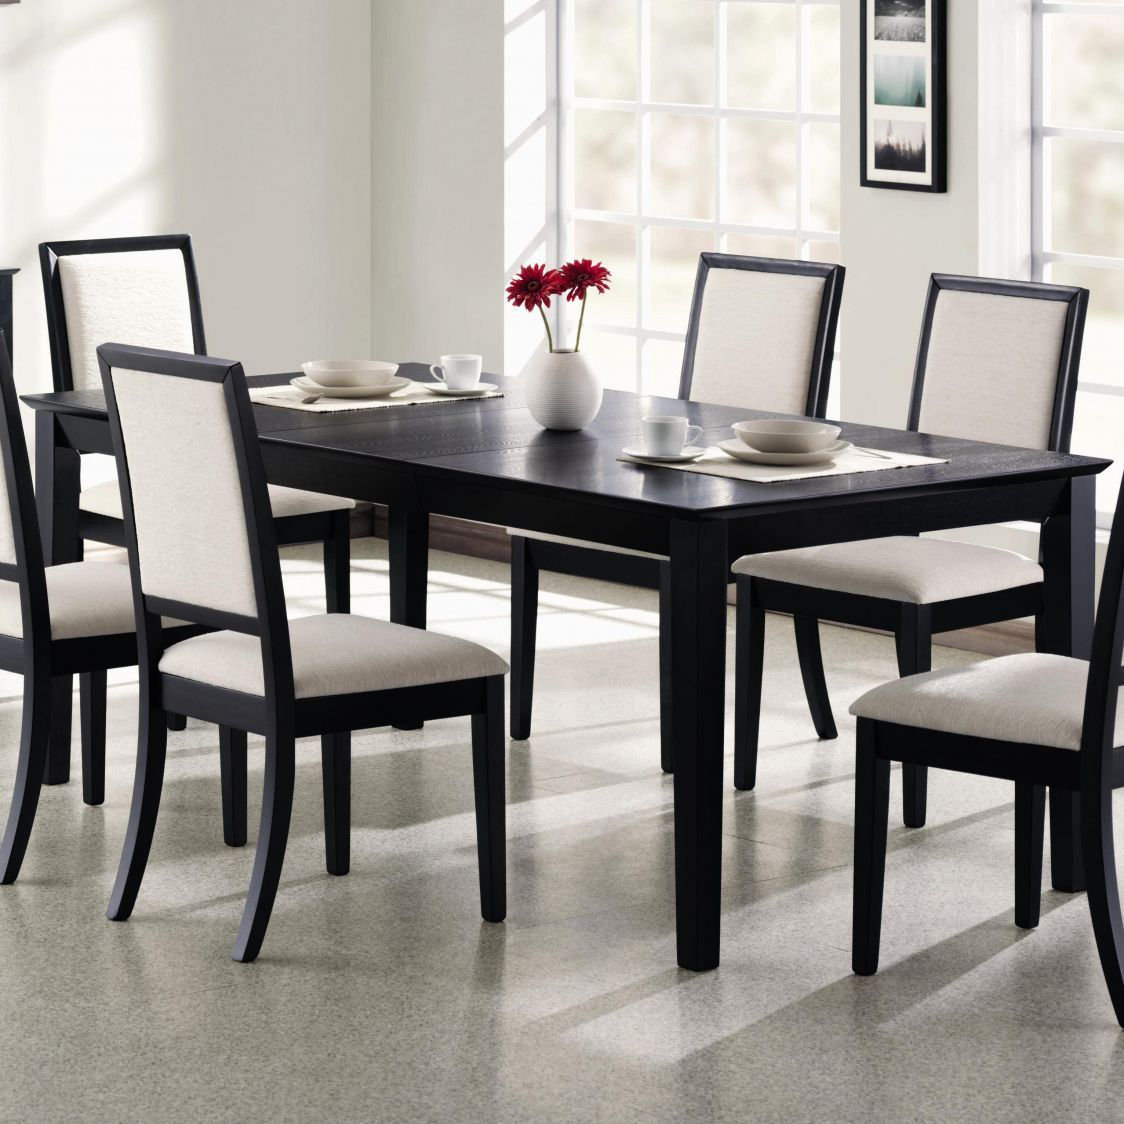 Black Lacquer Dining Room Chairs  Best Way To Paint Furniture Inspiration Black Dining Room Chair Decorating Design